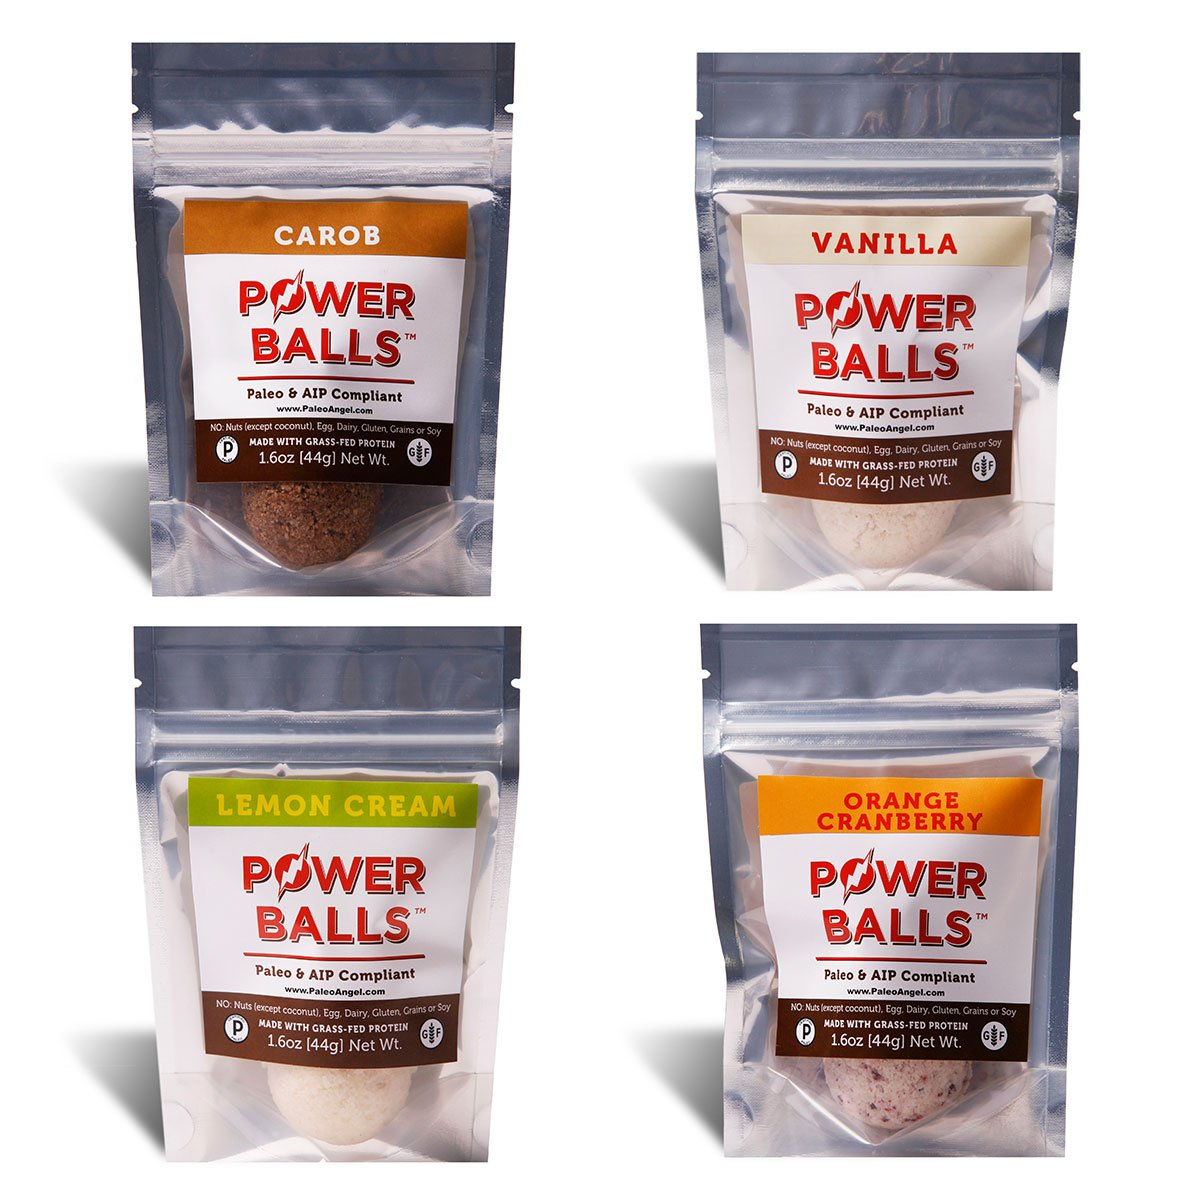 Paleo Angel Power Balls Healthy Paleo Approved Gluten Free AIP Protein Snack Bars (AIP Variety 4-Pack)